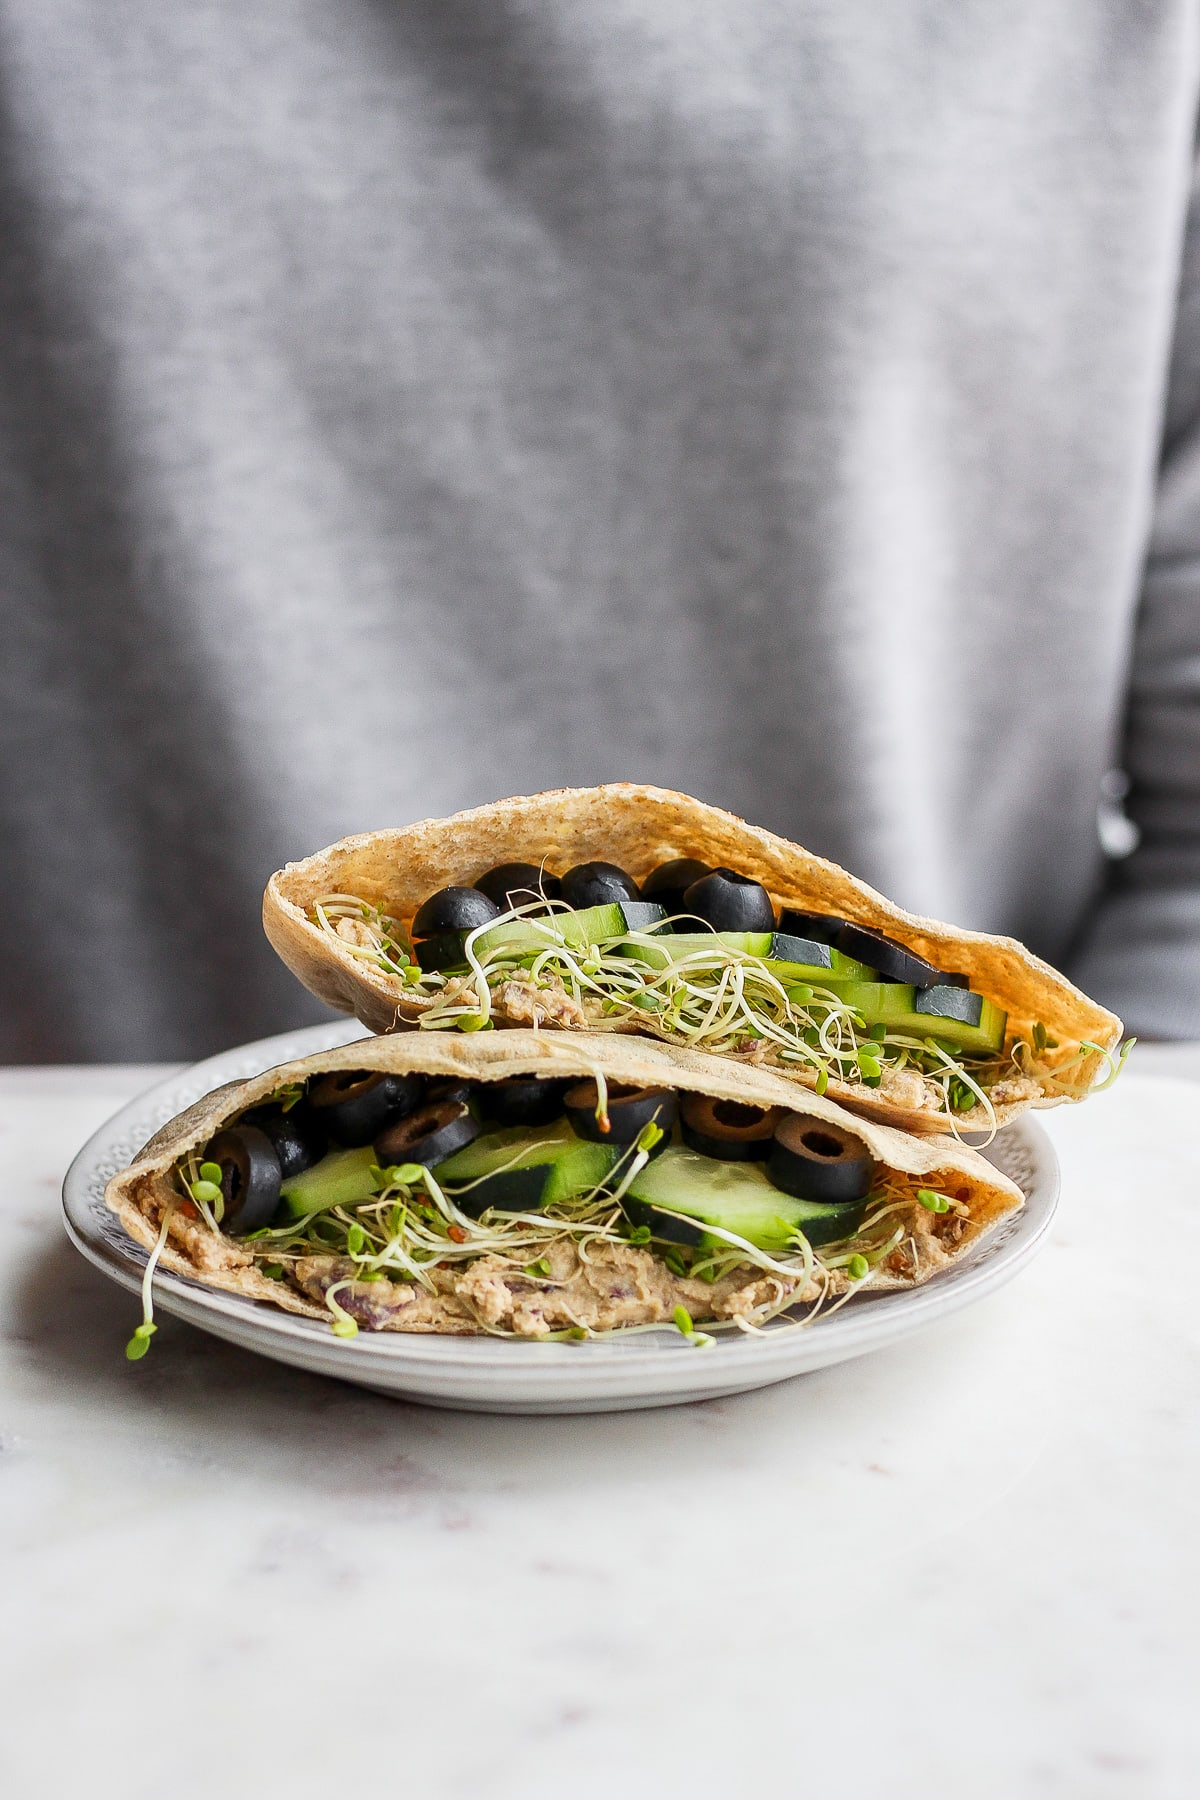 A vegan pita sandwich sitting on a plate in from of someone.